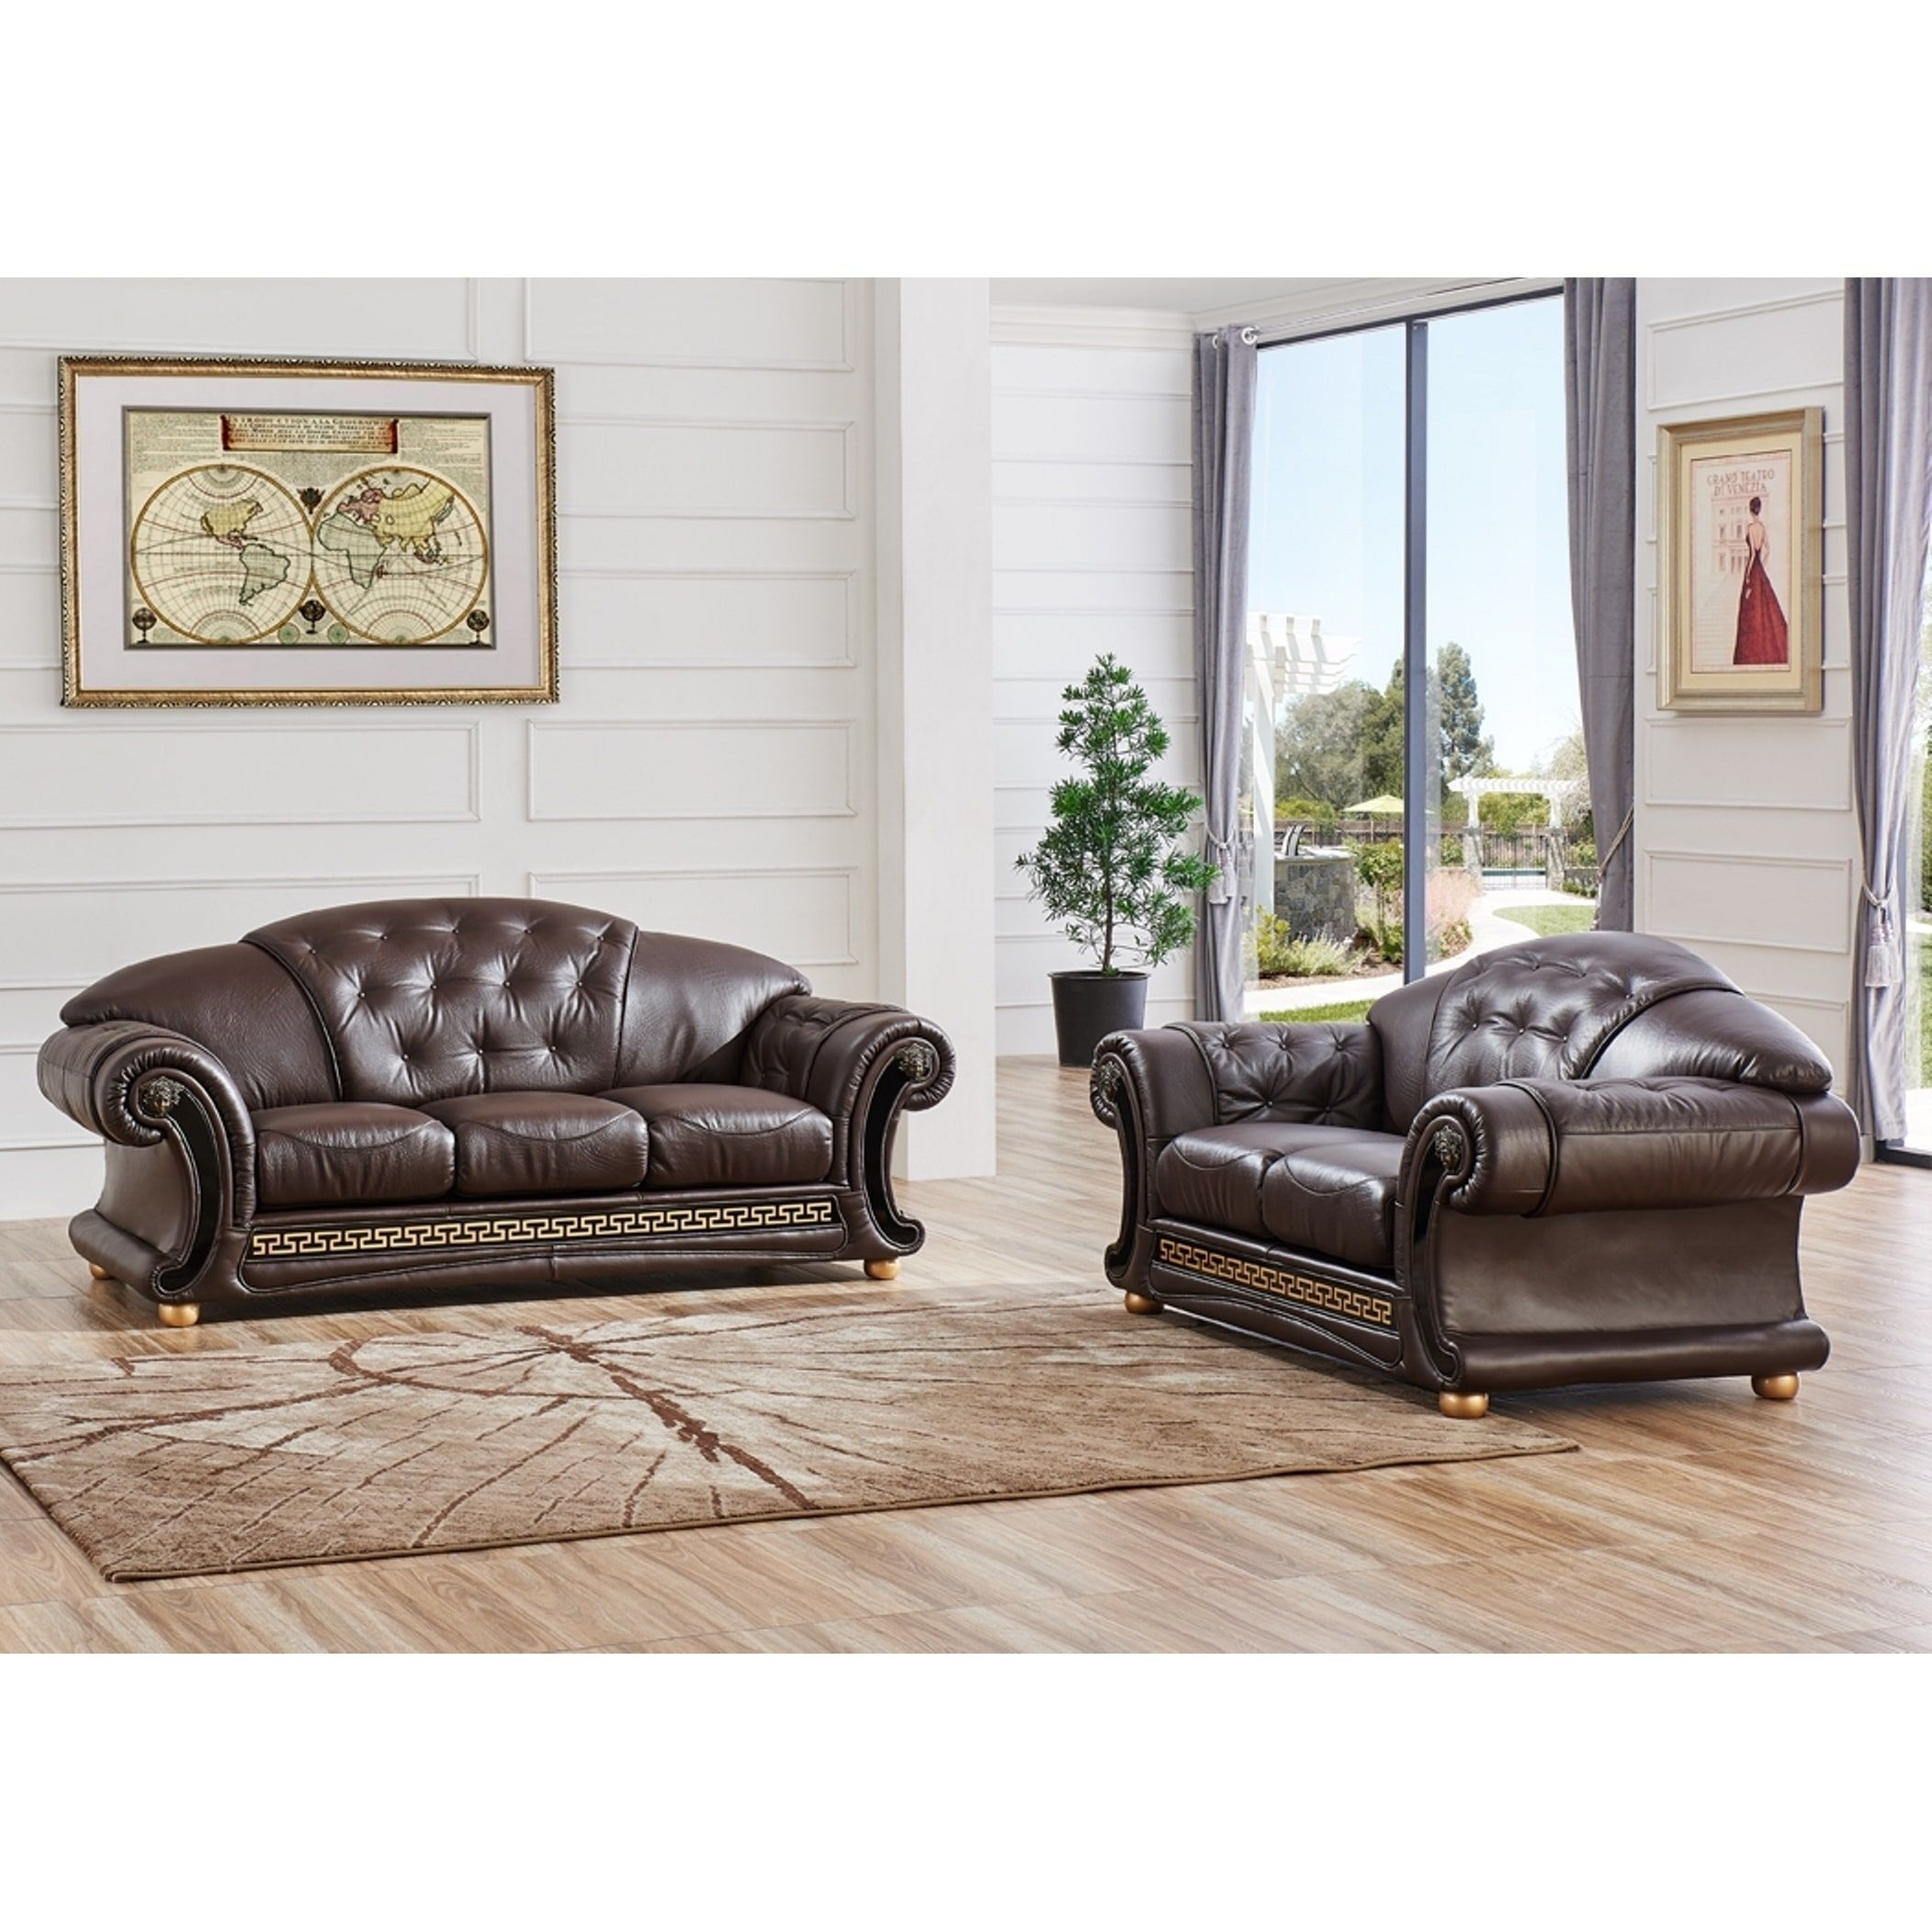 Luca Home 2 Piece Split Brown Leather Living Room Set (Brown Half For Clyde Saddle 3 Piece Power Reclining Sectionals With Power Headrest & Usb (View 22 of 25)